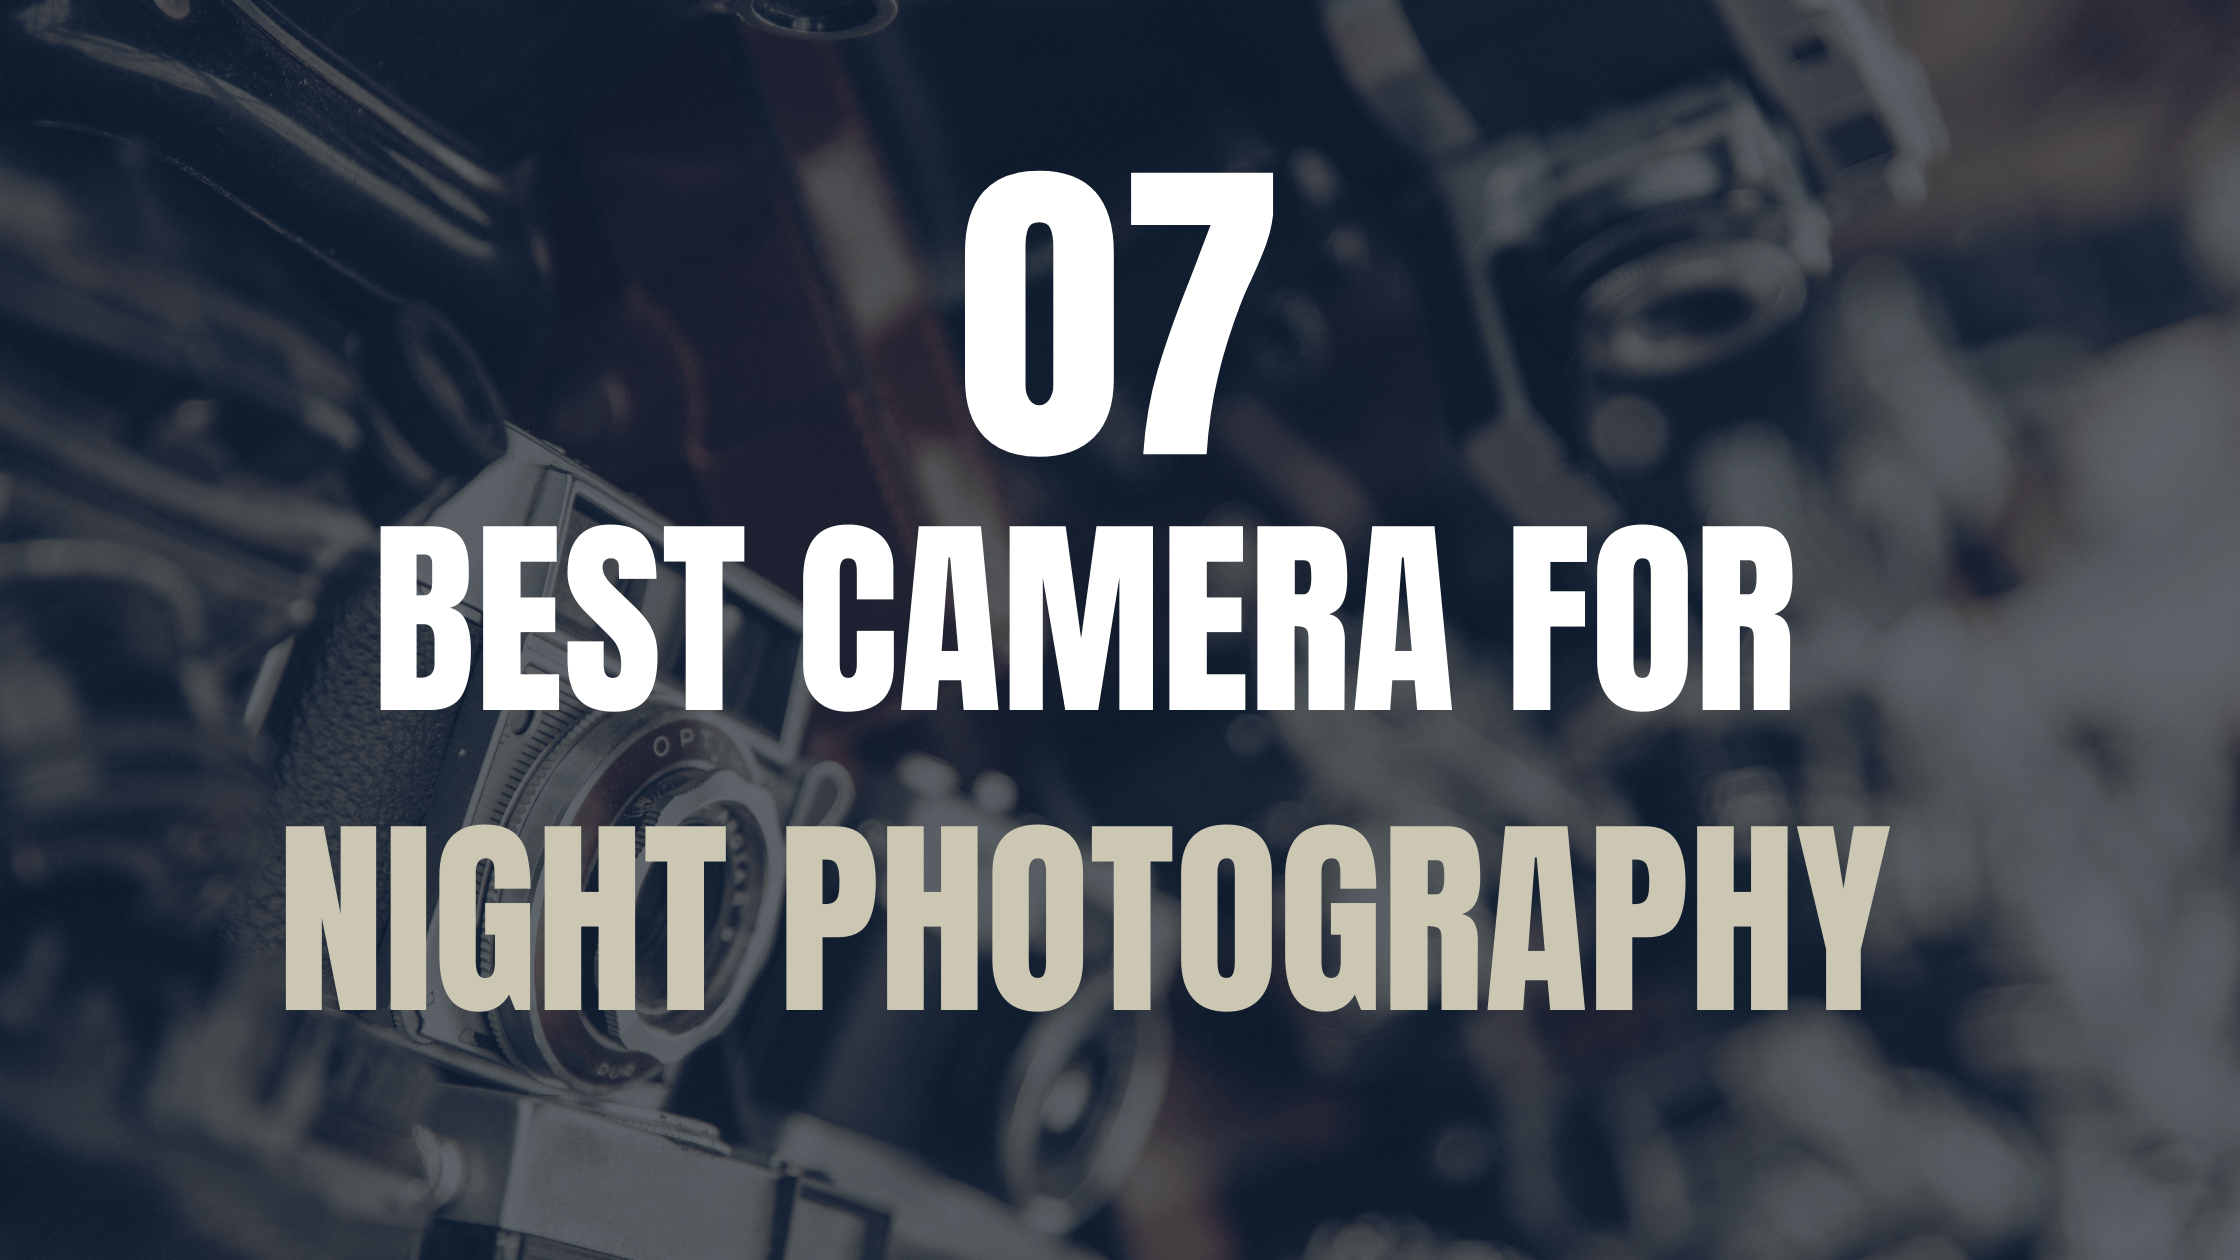 7 best camera for night photography that you need to lookout